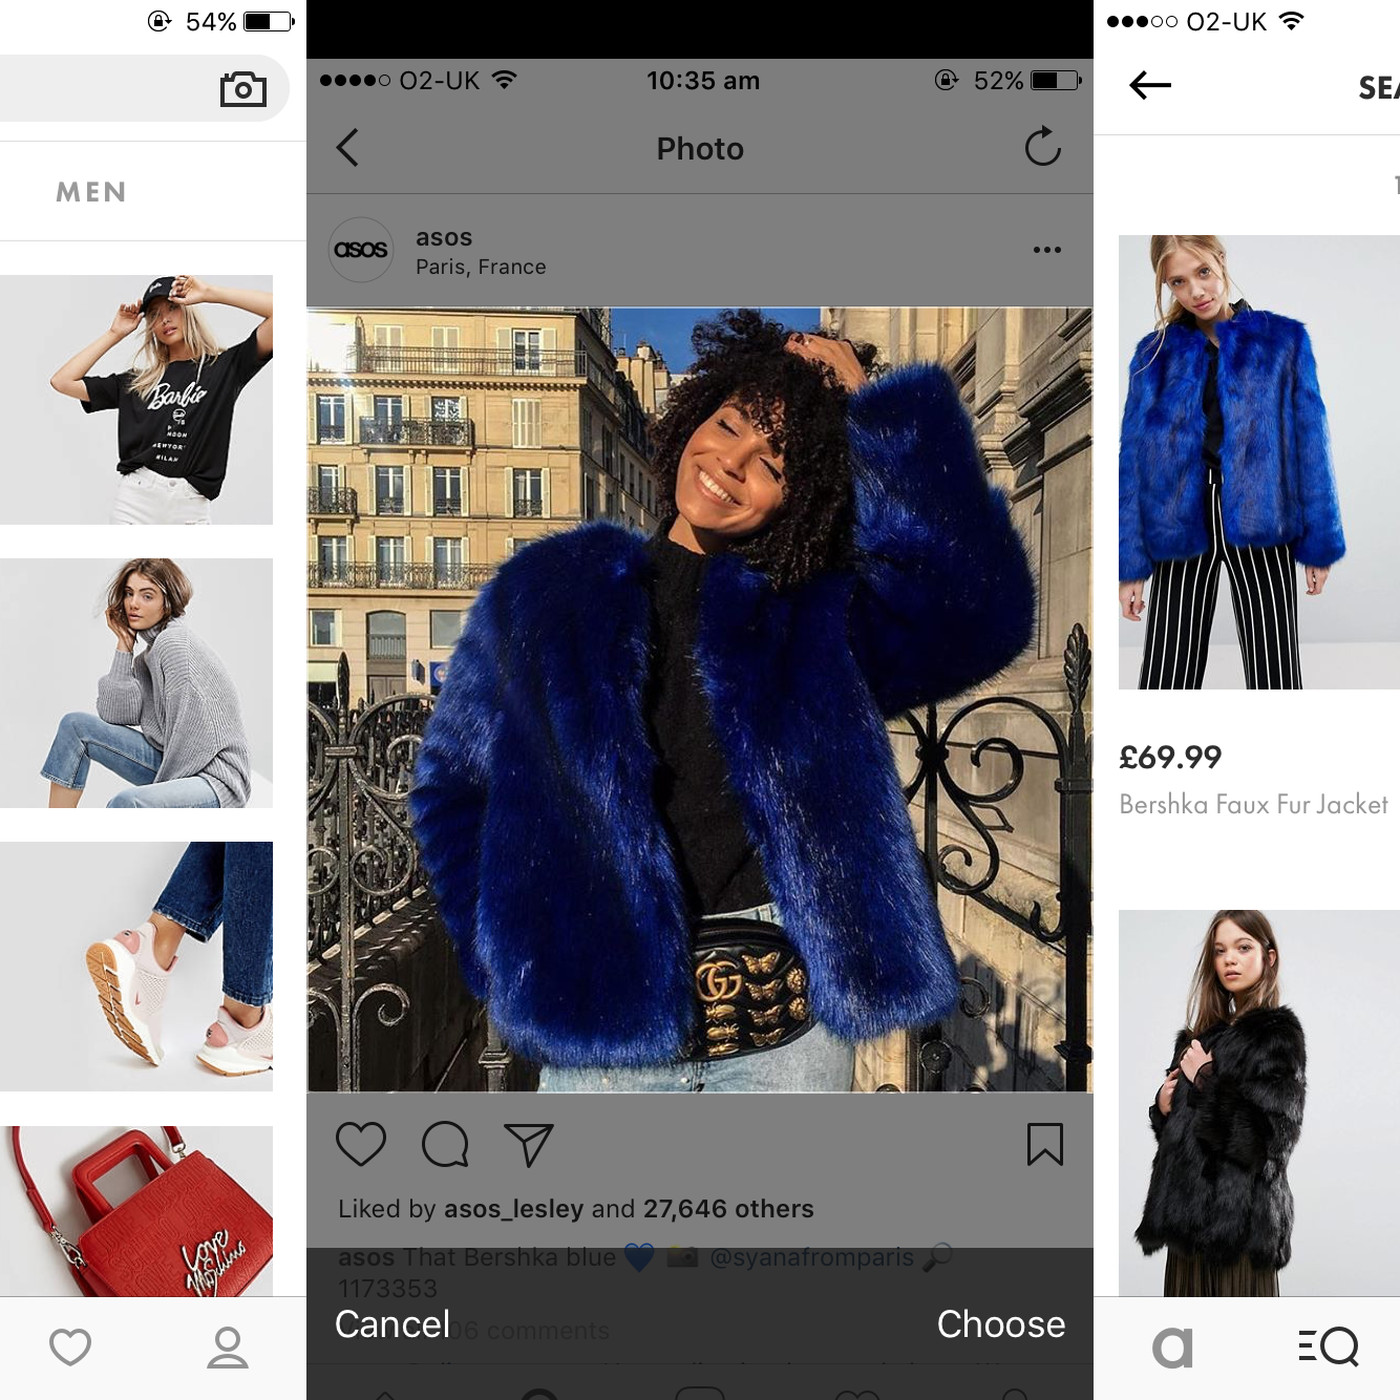 f401cbcc2eb Asos  Style Match is like a reverse image search for shoppable clothes - The  Verge